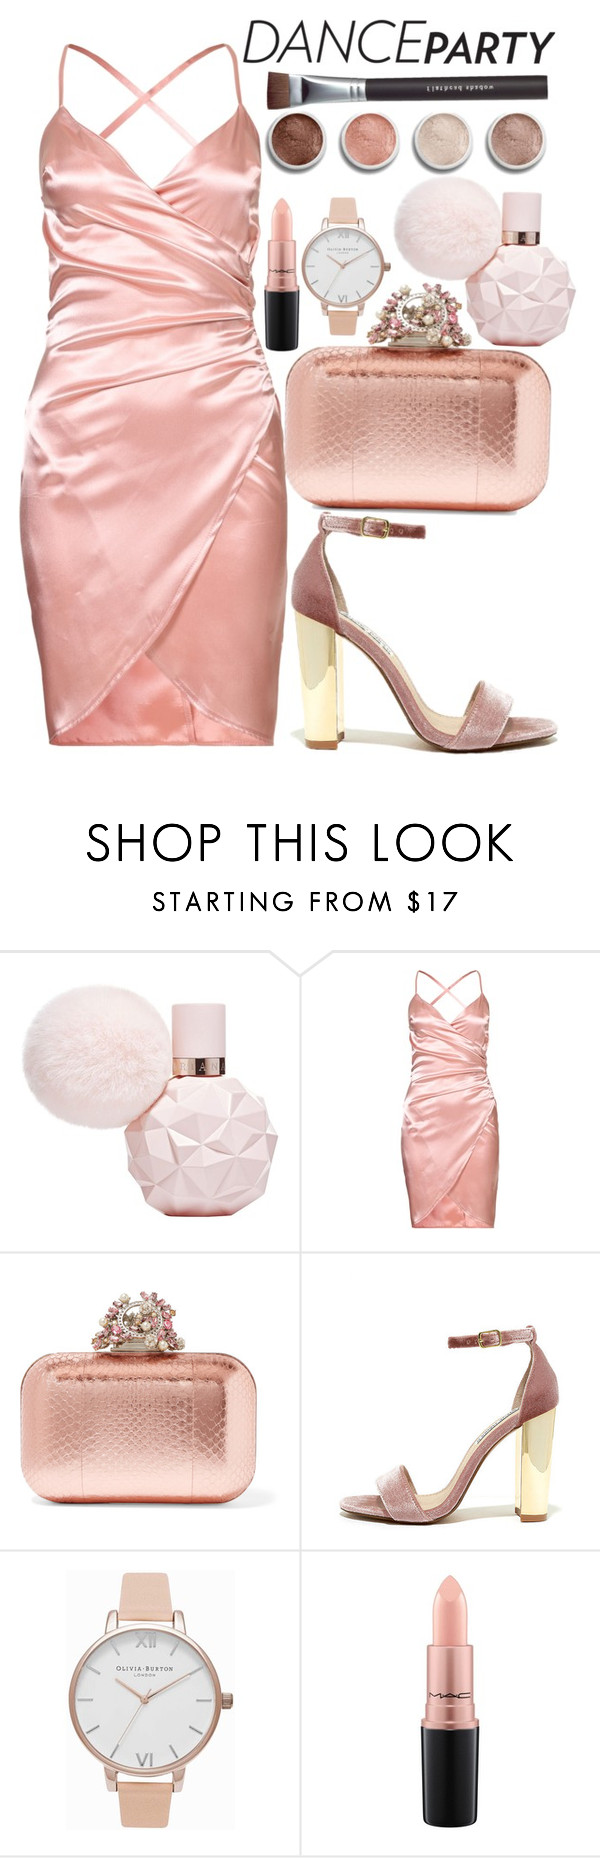 """2017"" by kit-kat-katya ❤ liked on Polyvore featuring Jimmy Choo, Steve Madden, Olivia Burton, MAC Cosmetics, Terre Mère and Bare Escentuals"